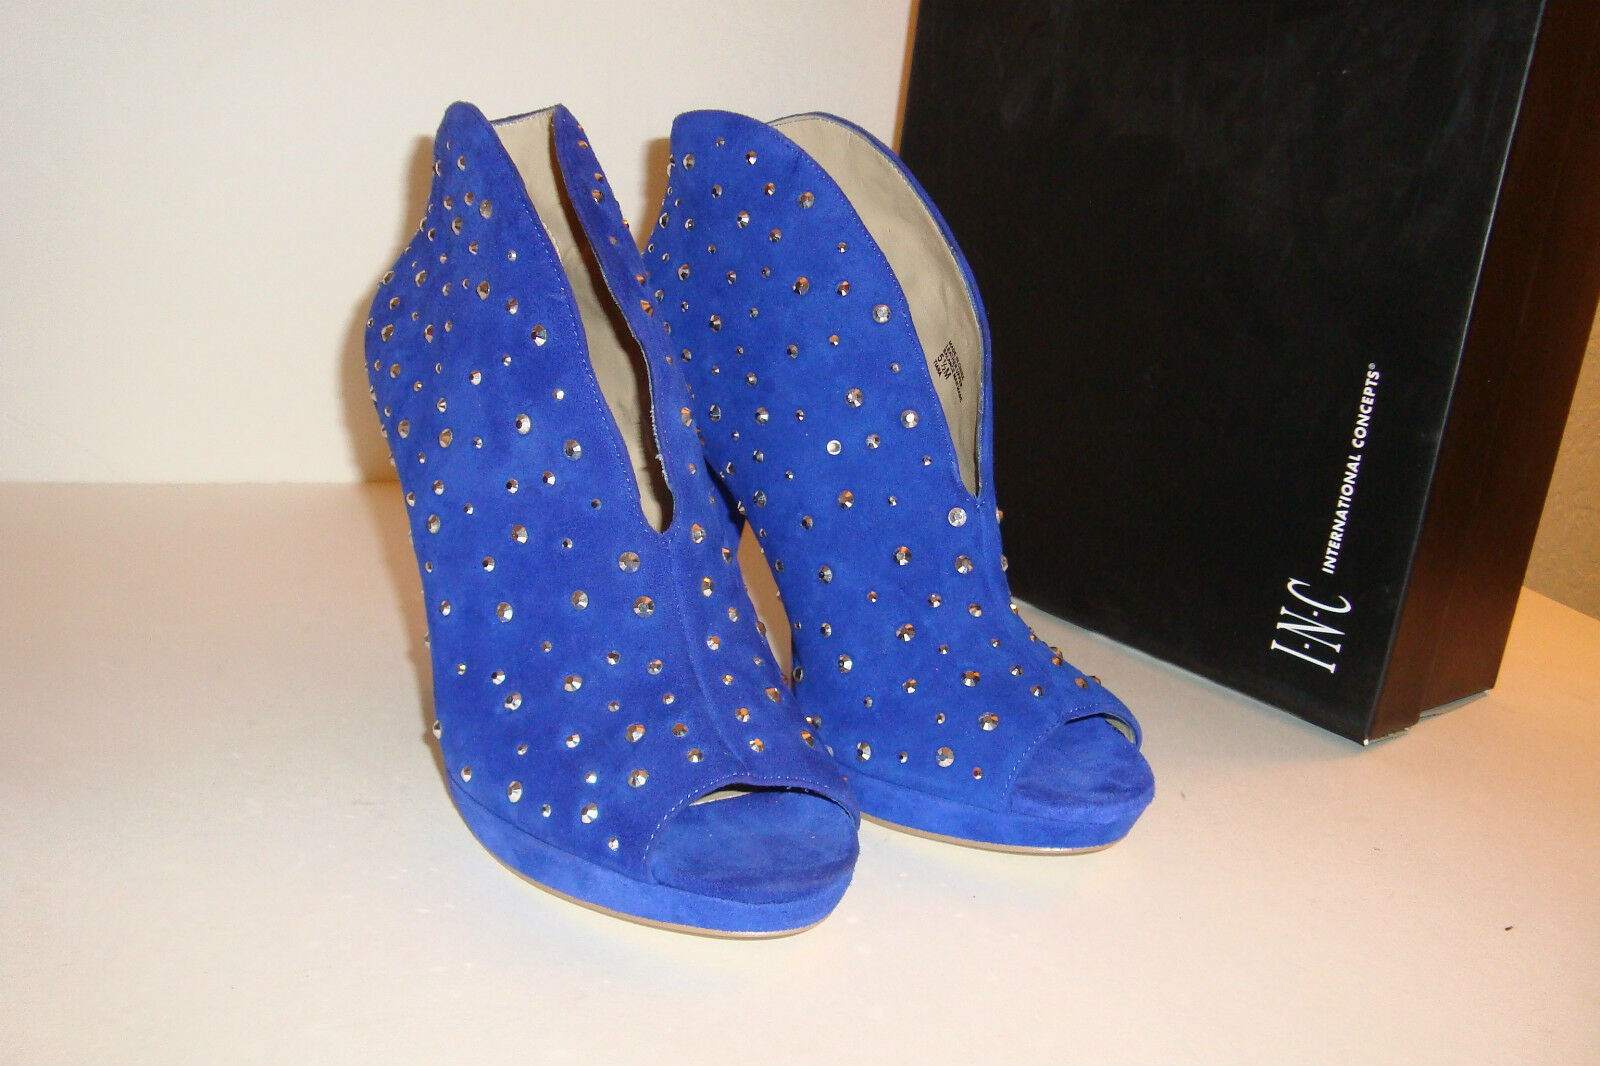 INC International Concepts Damenschuhe Tiara Blau Brite Ink Heels Schuhes 5.5 MED NEU